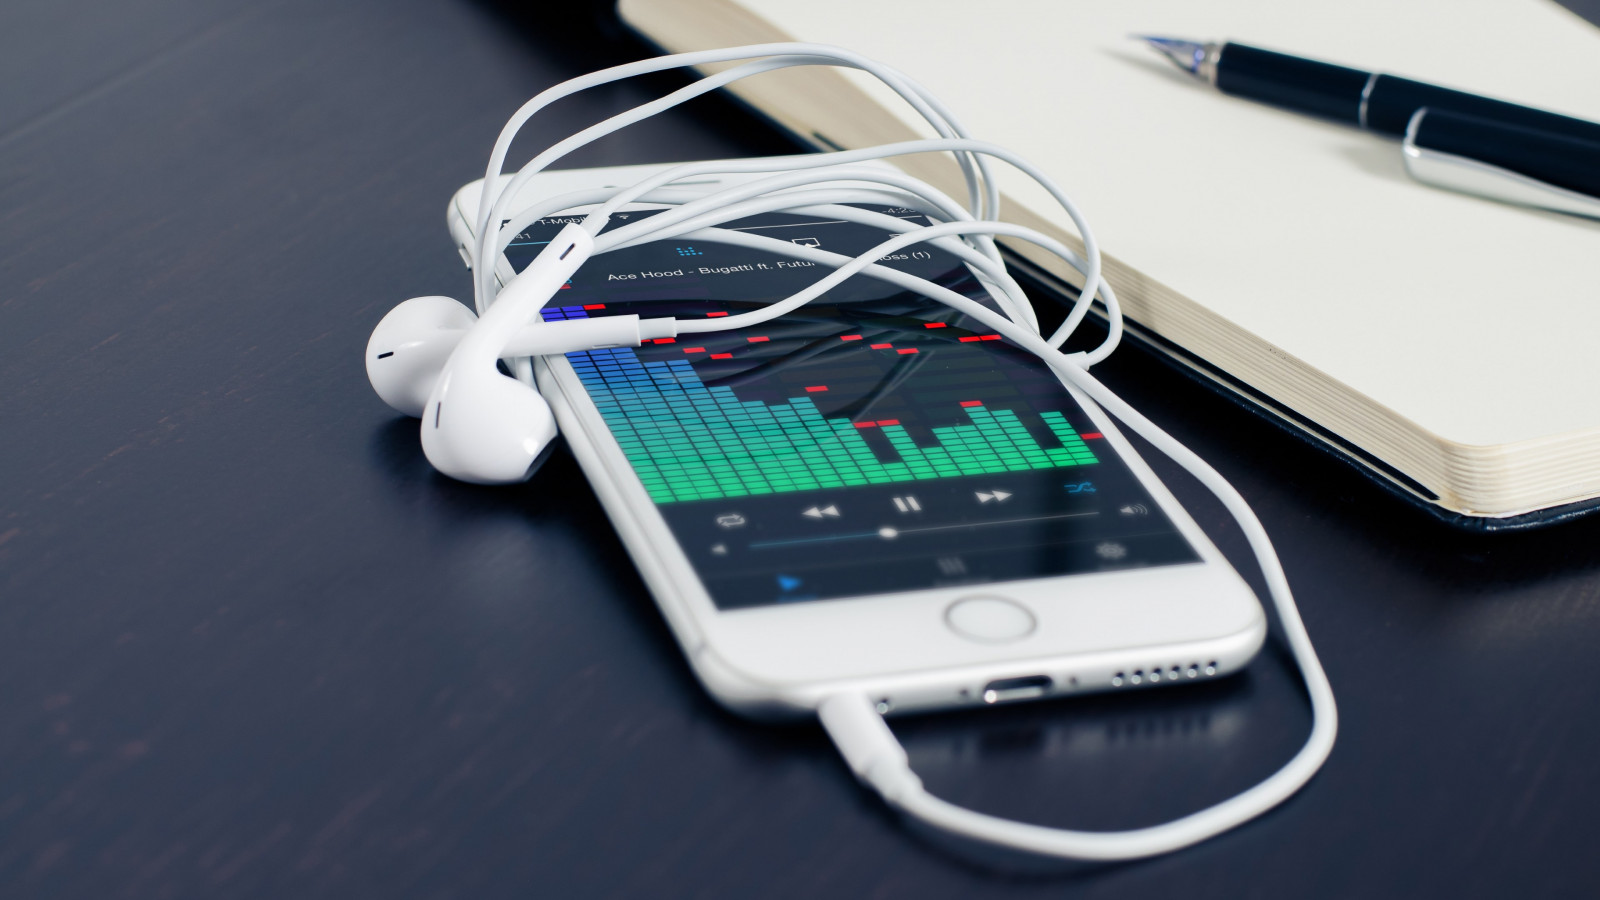 Music plays on the iPhone's earphones wallpaper 1600x900